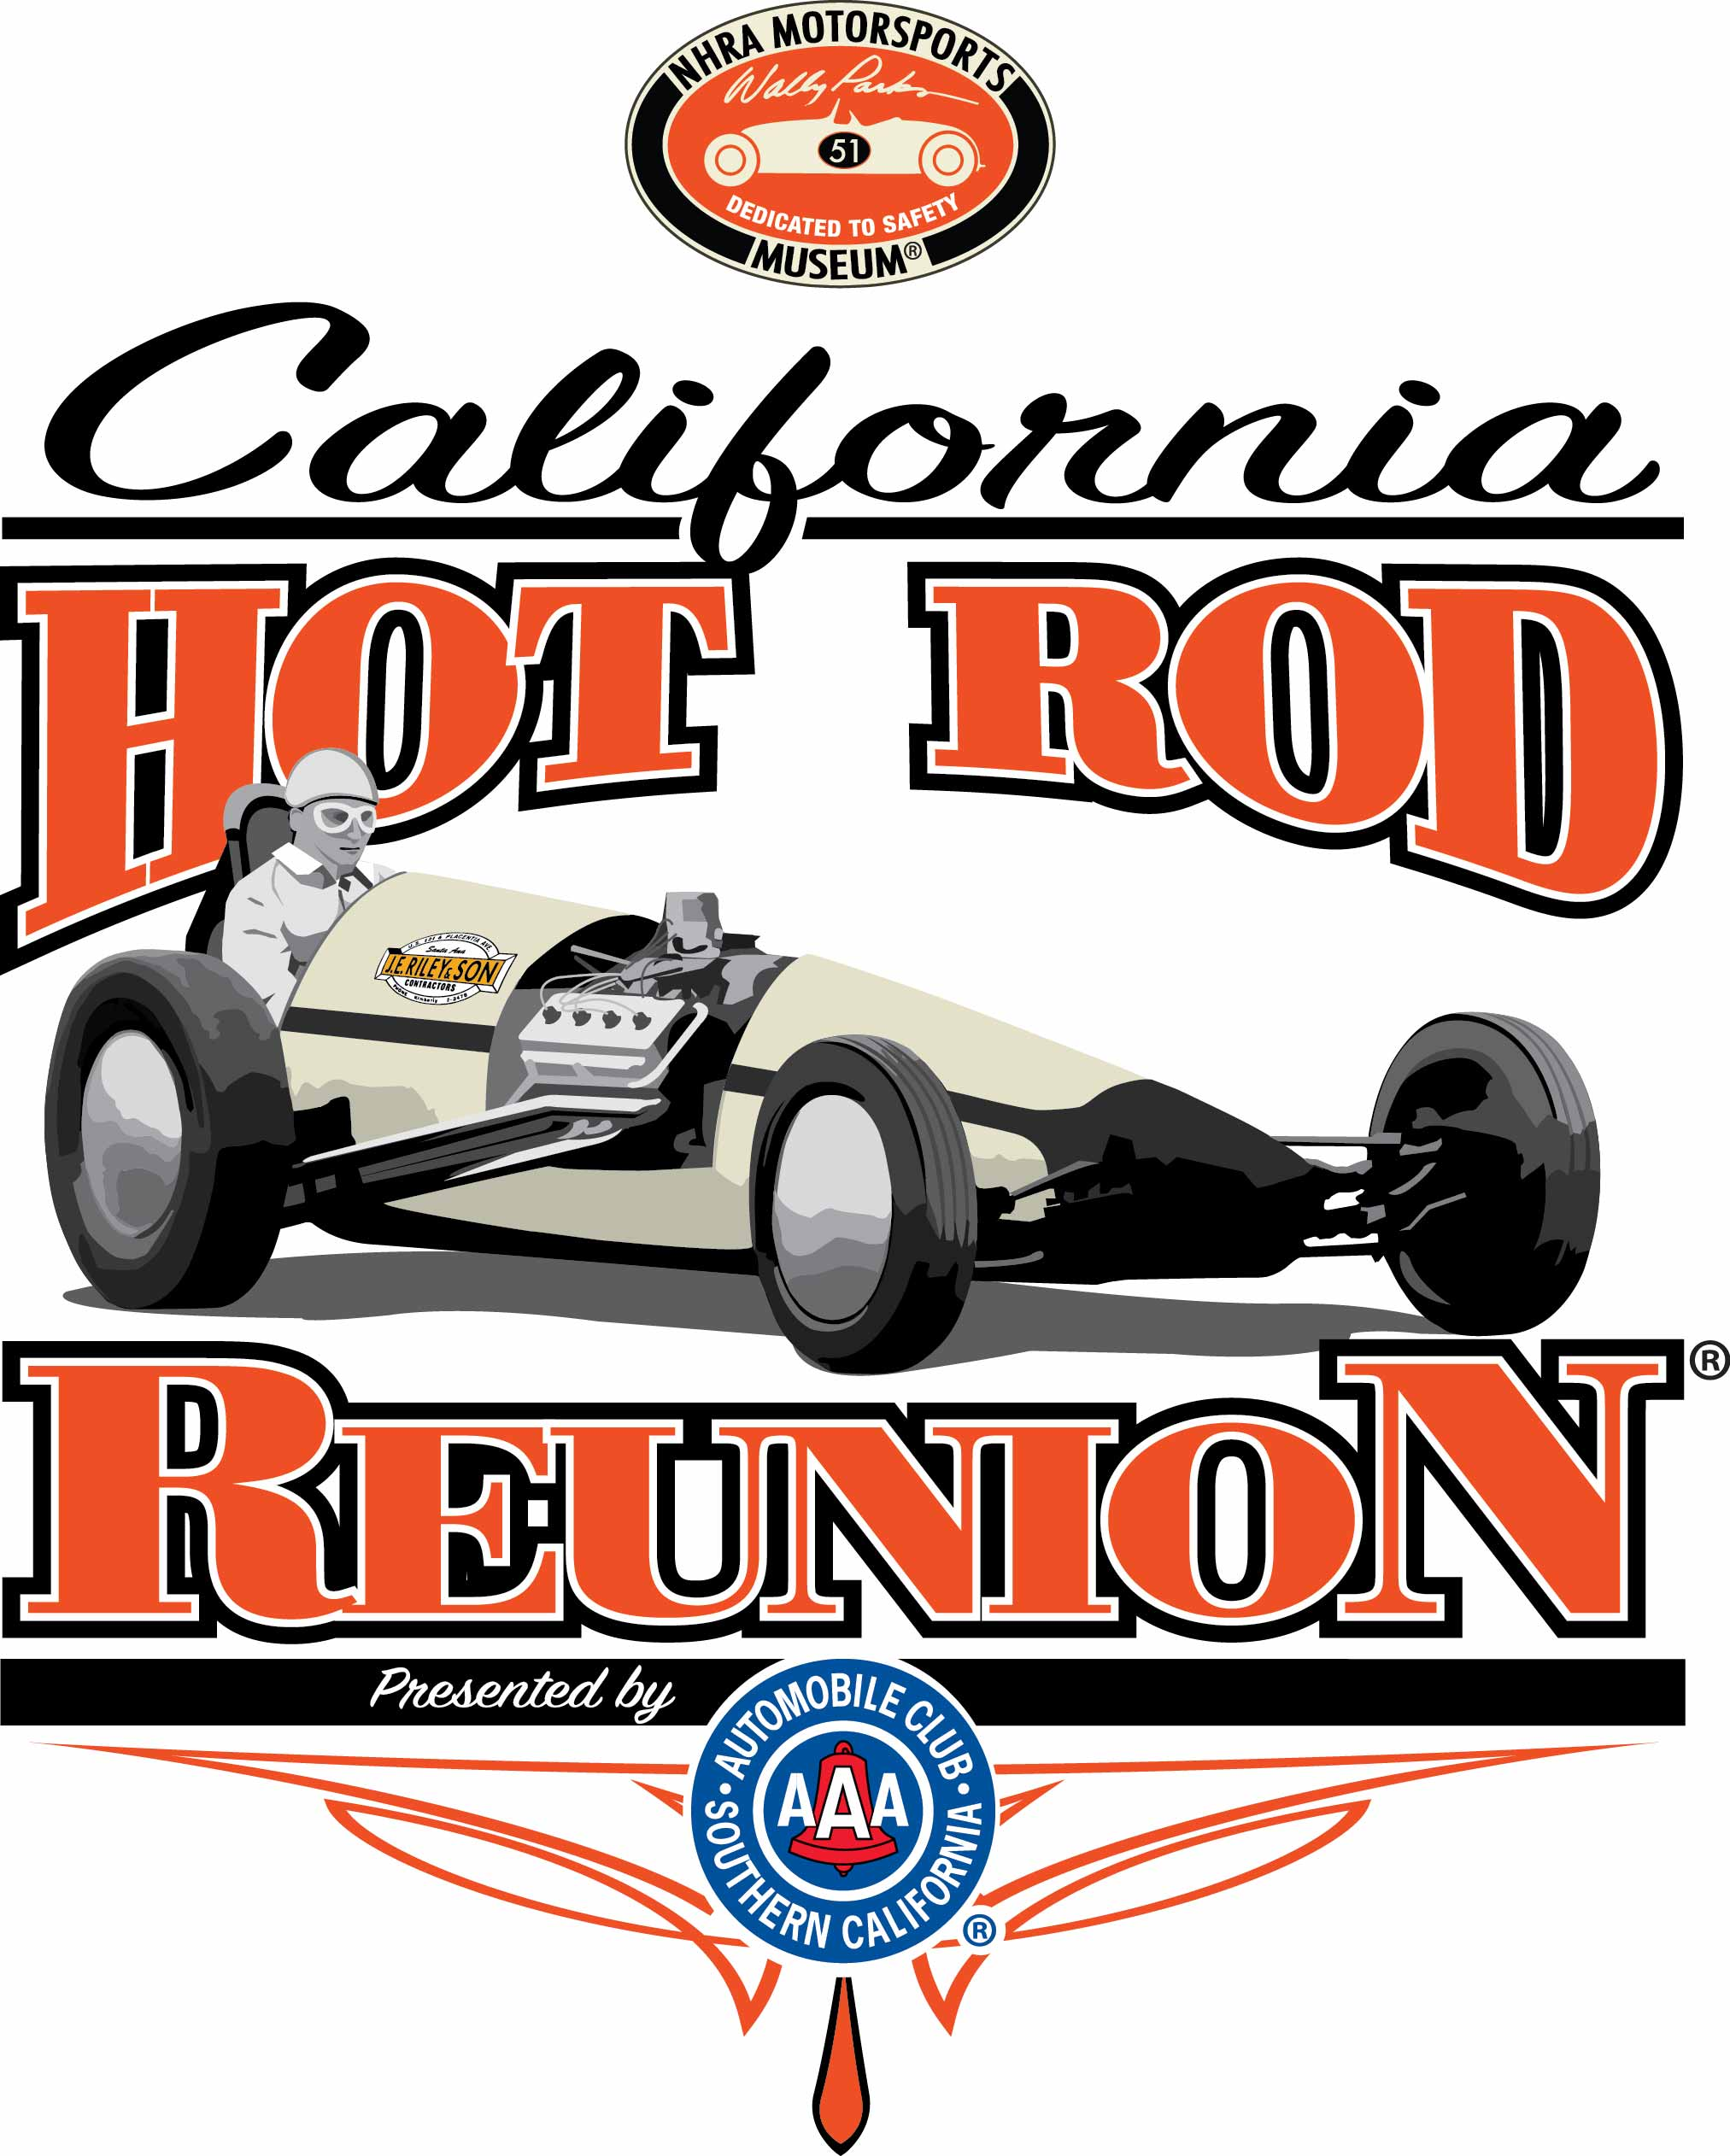 Hot Rod Reunion